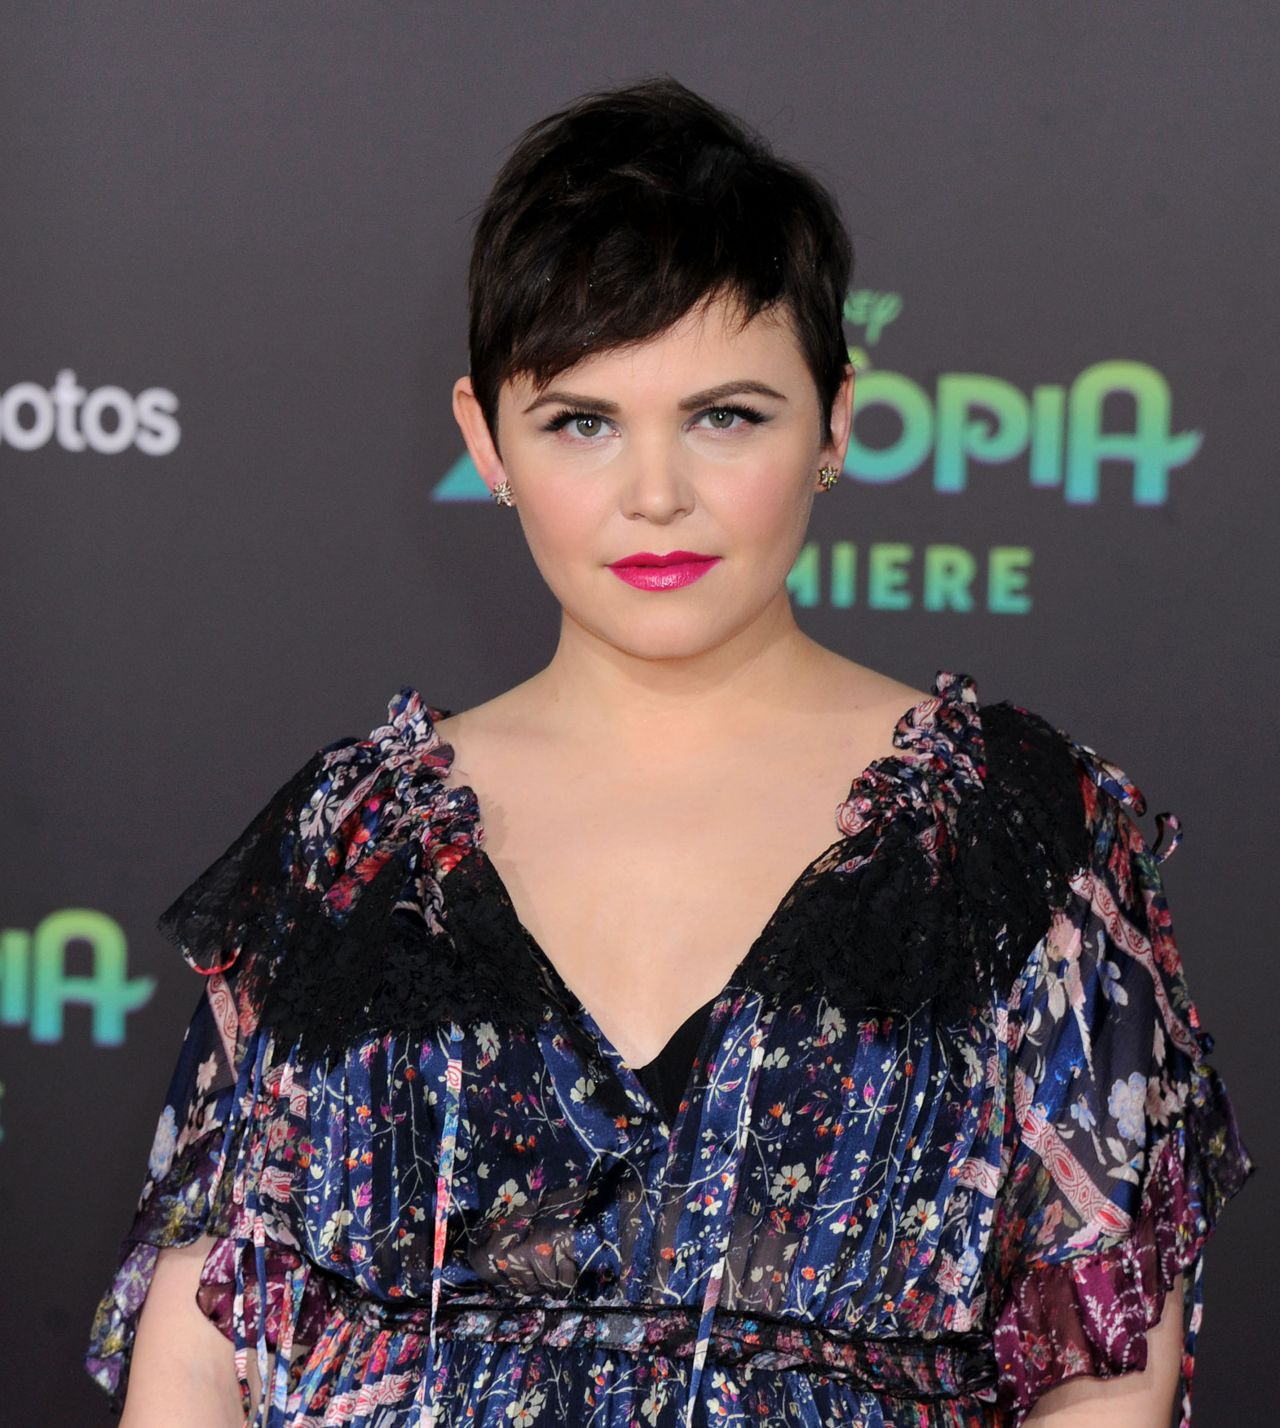 ginnifer-goodwin-zootopia-premiere-in-hollywood-ca-6